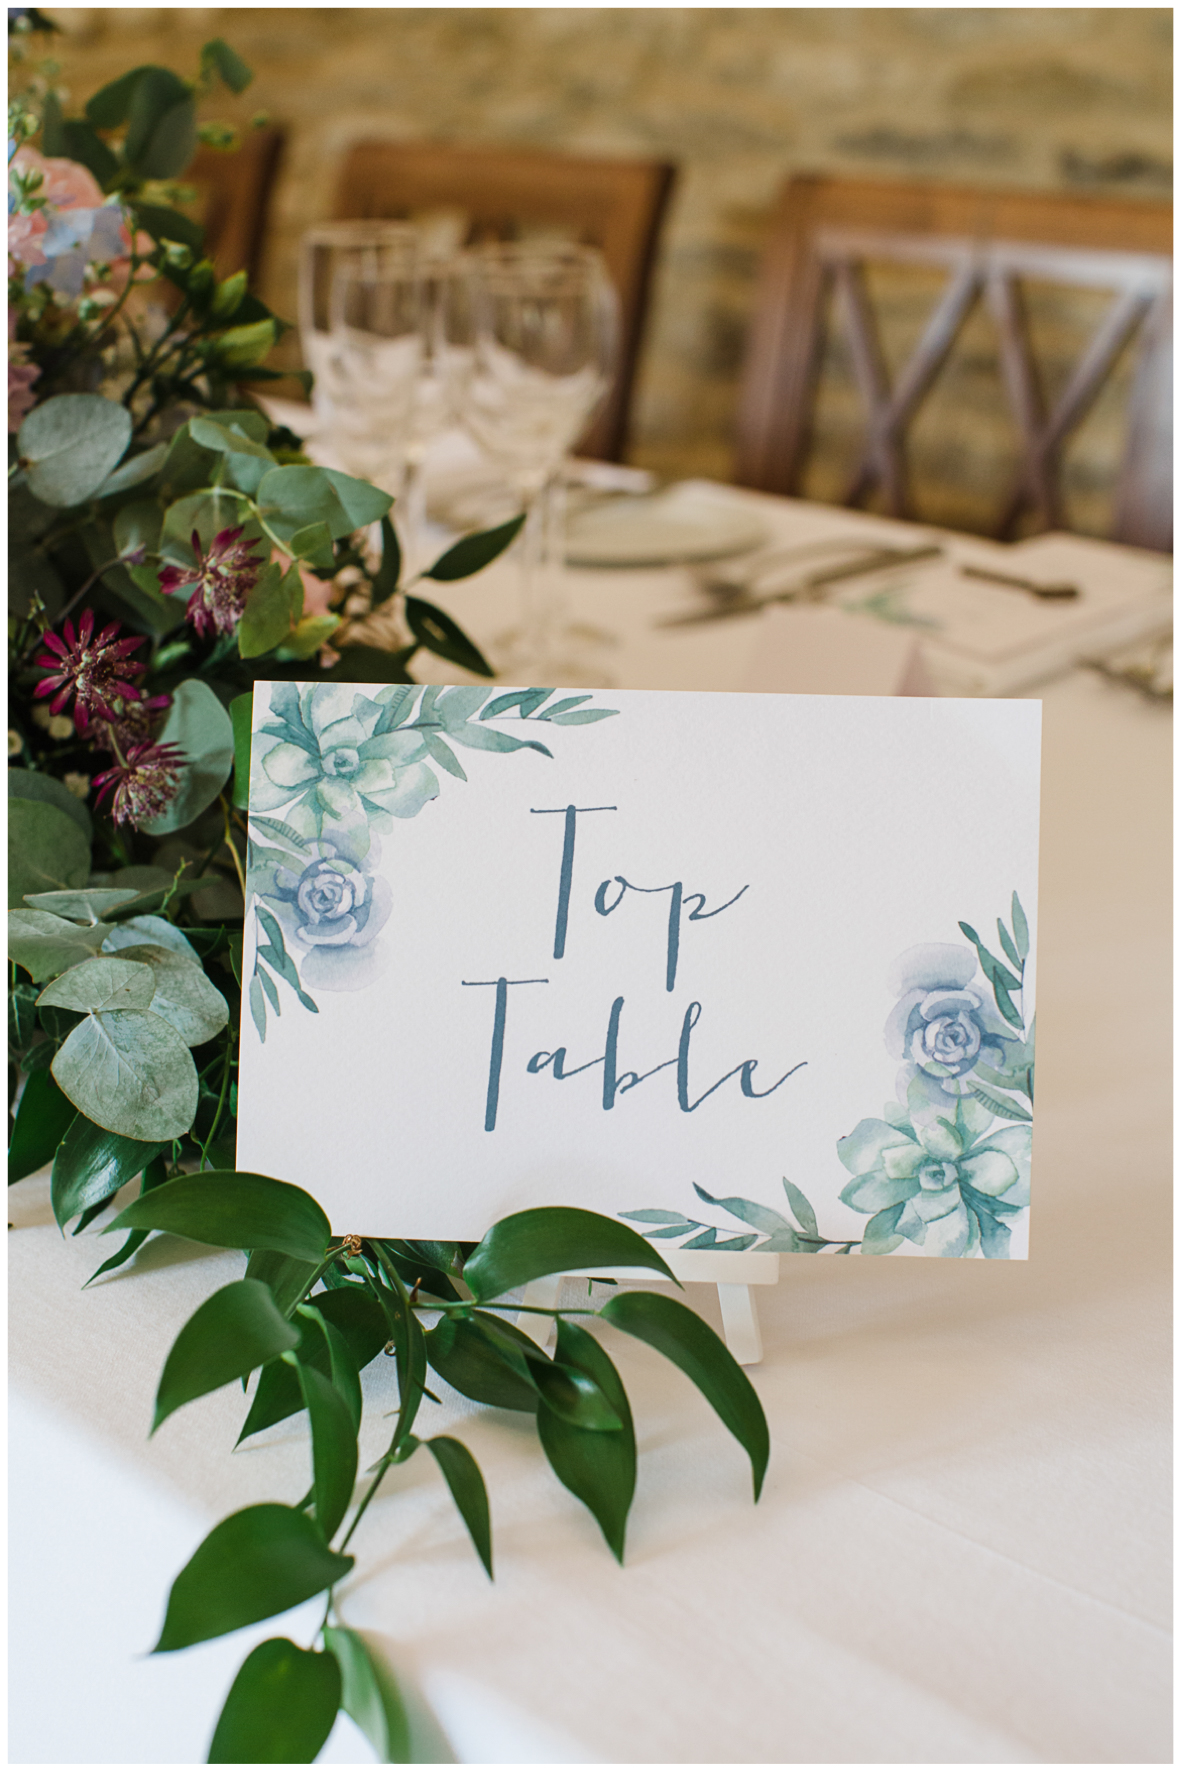 Top table, wedding signage,